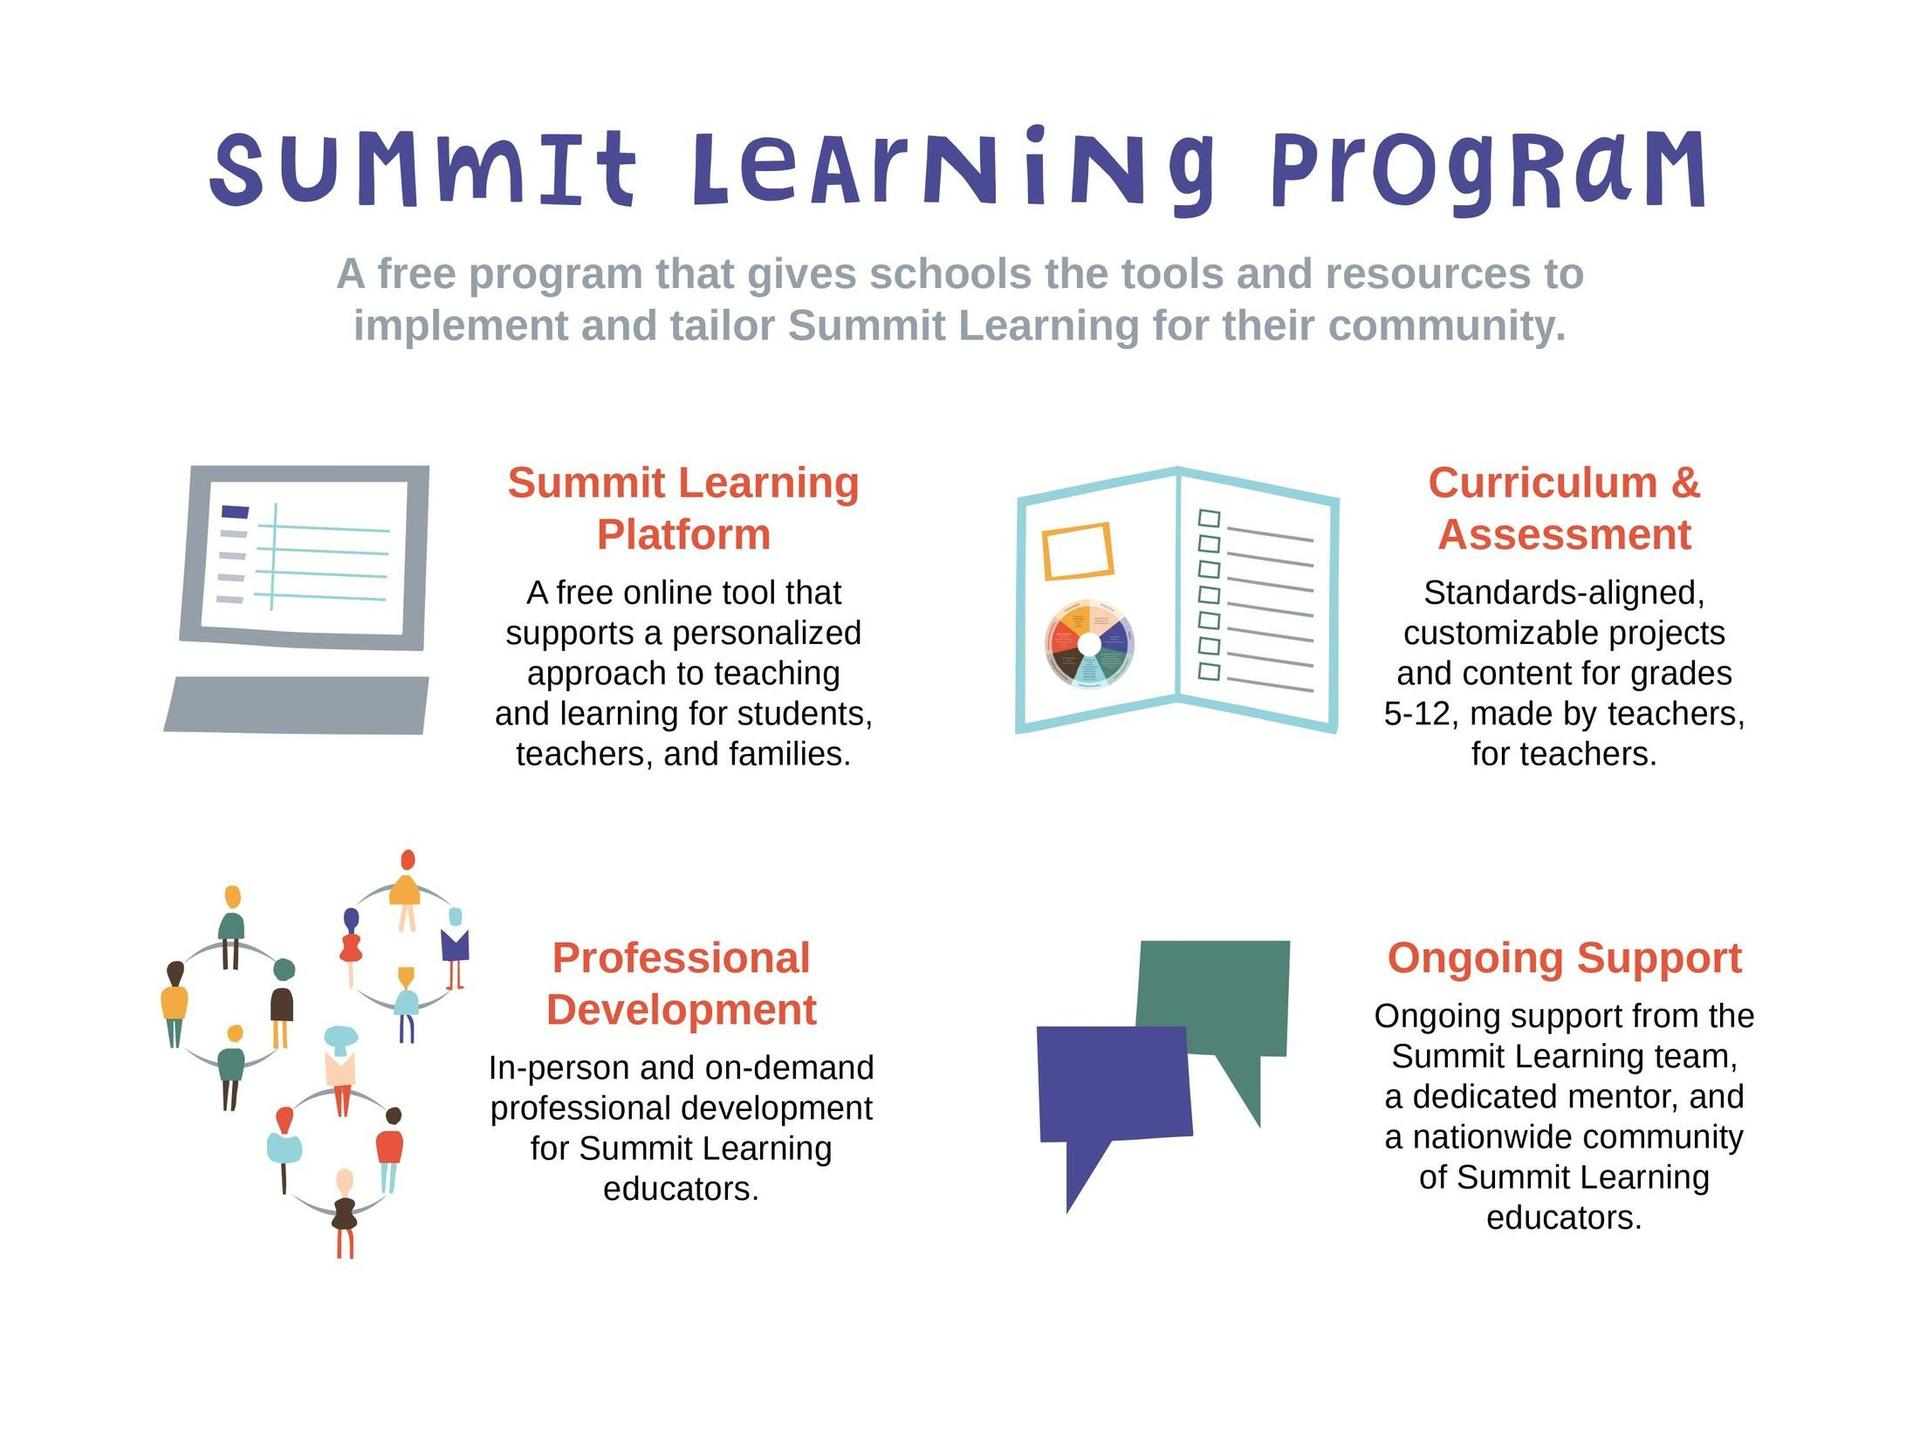 Poster explaining what the Summit Learning Platform is